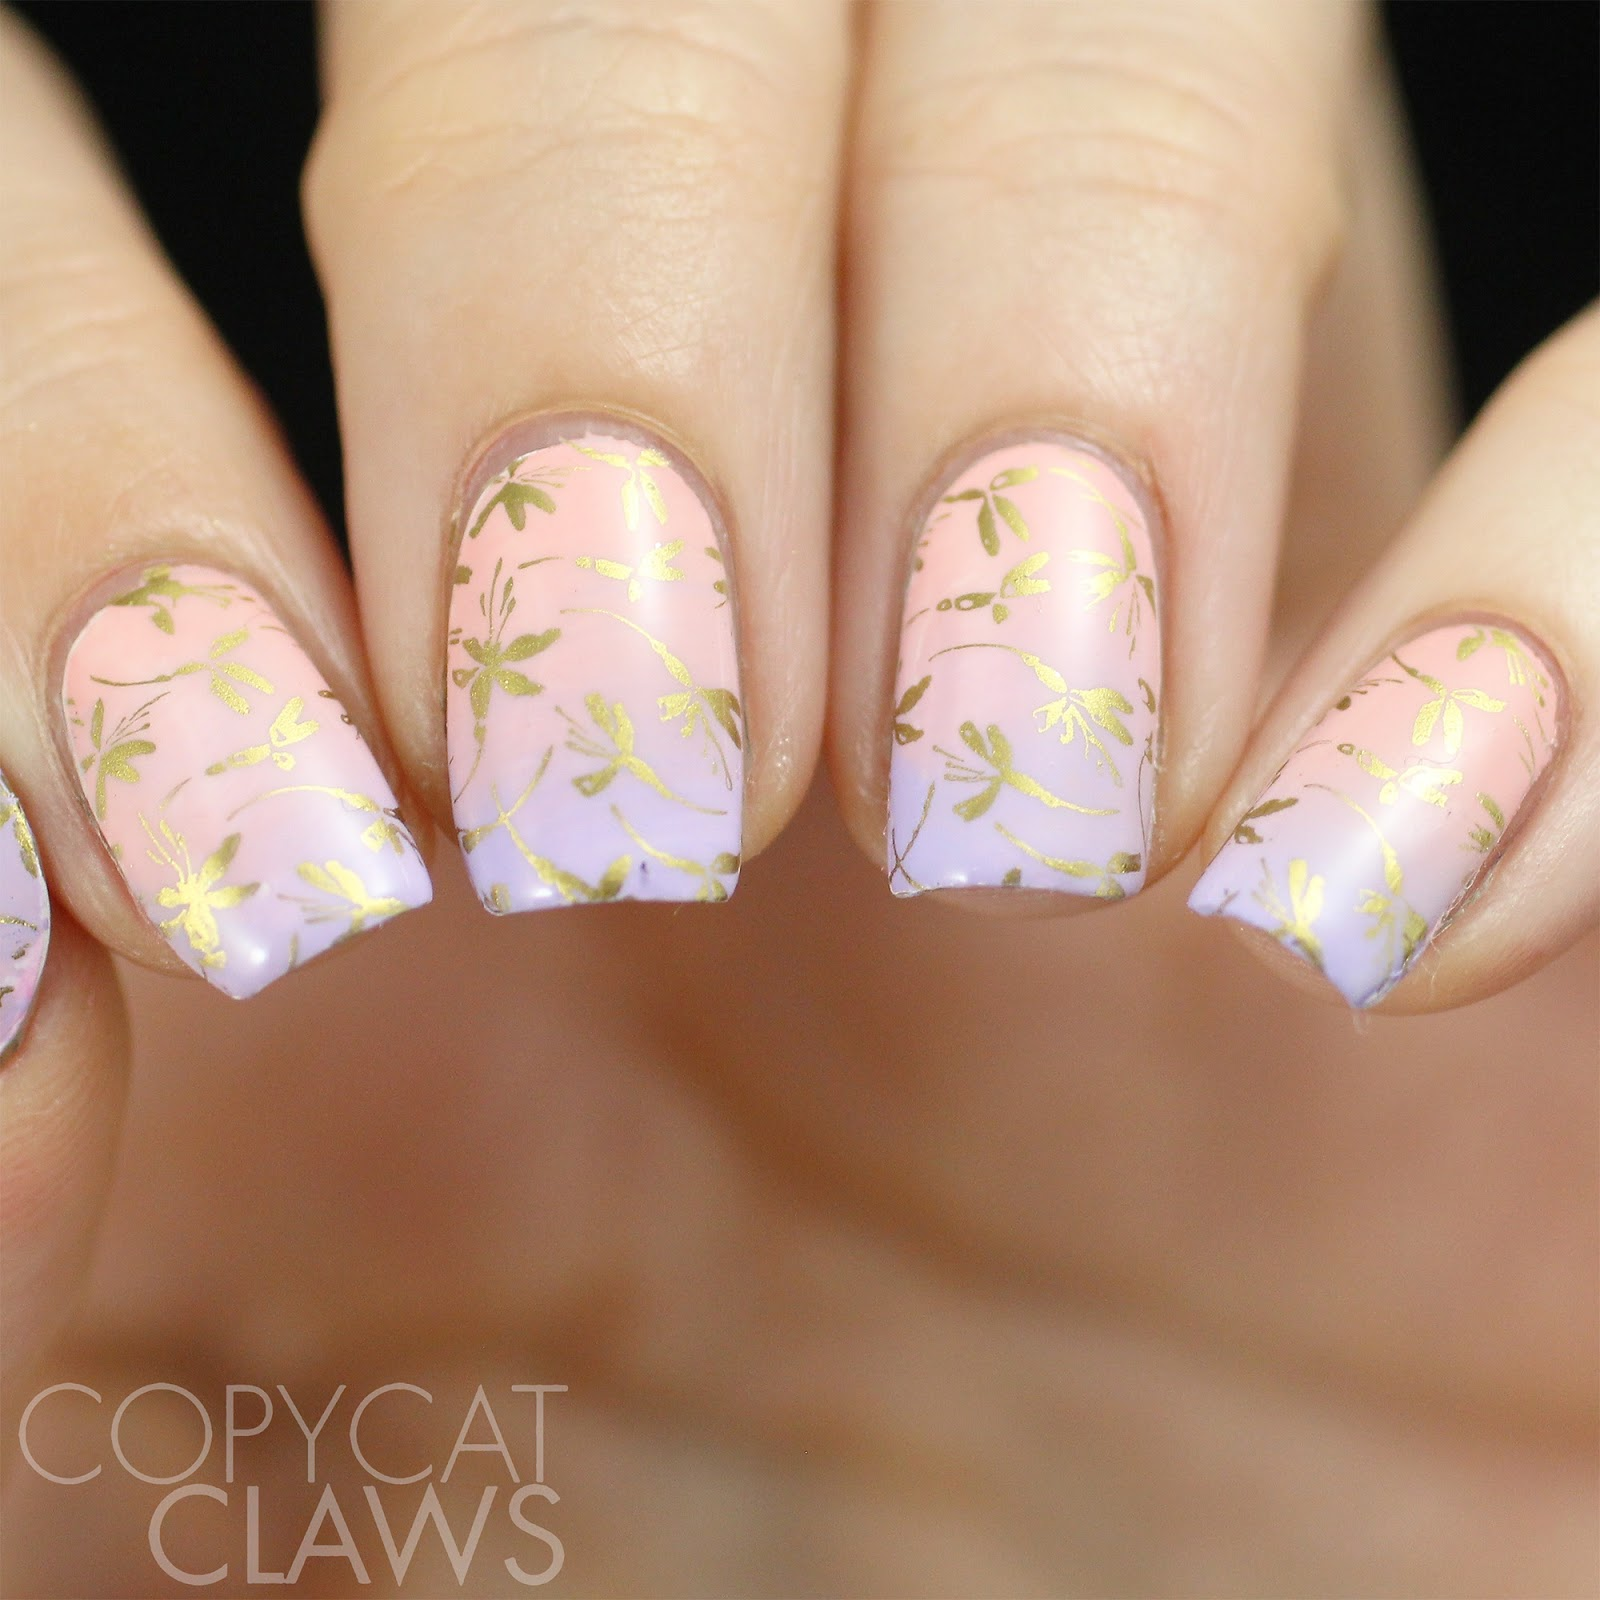 Copycat Claws: 26 Great Nail Art Ideas - Lilac, Pink & Gold